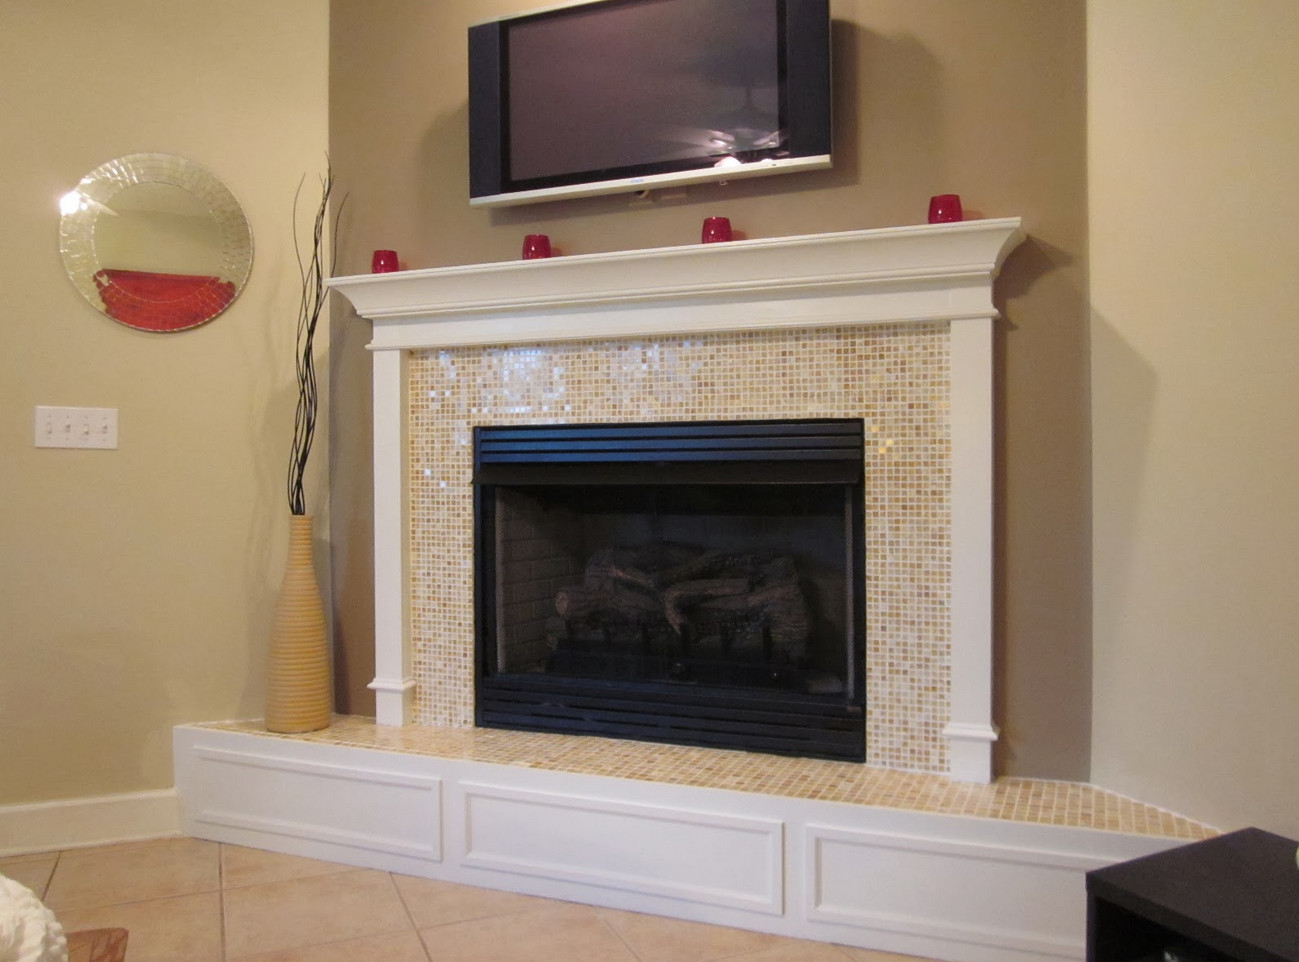 Fireplace Mantels And Surrounds Ideas Custom Fireplace Mantels And Surrounds Ideas  Interior Design Ideas Decorating Design